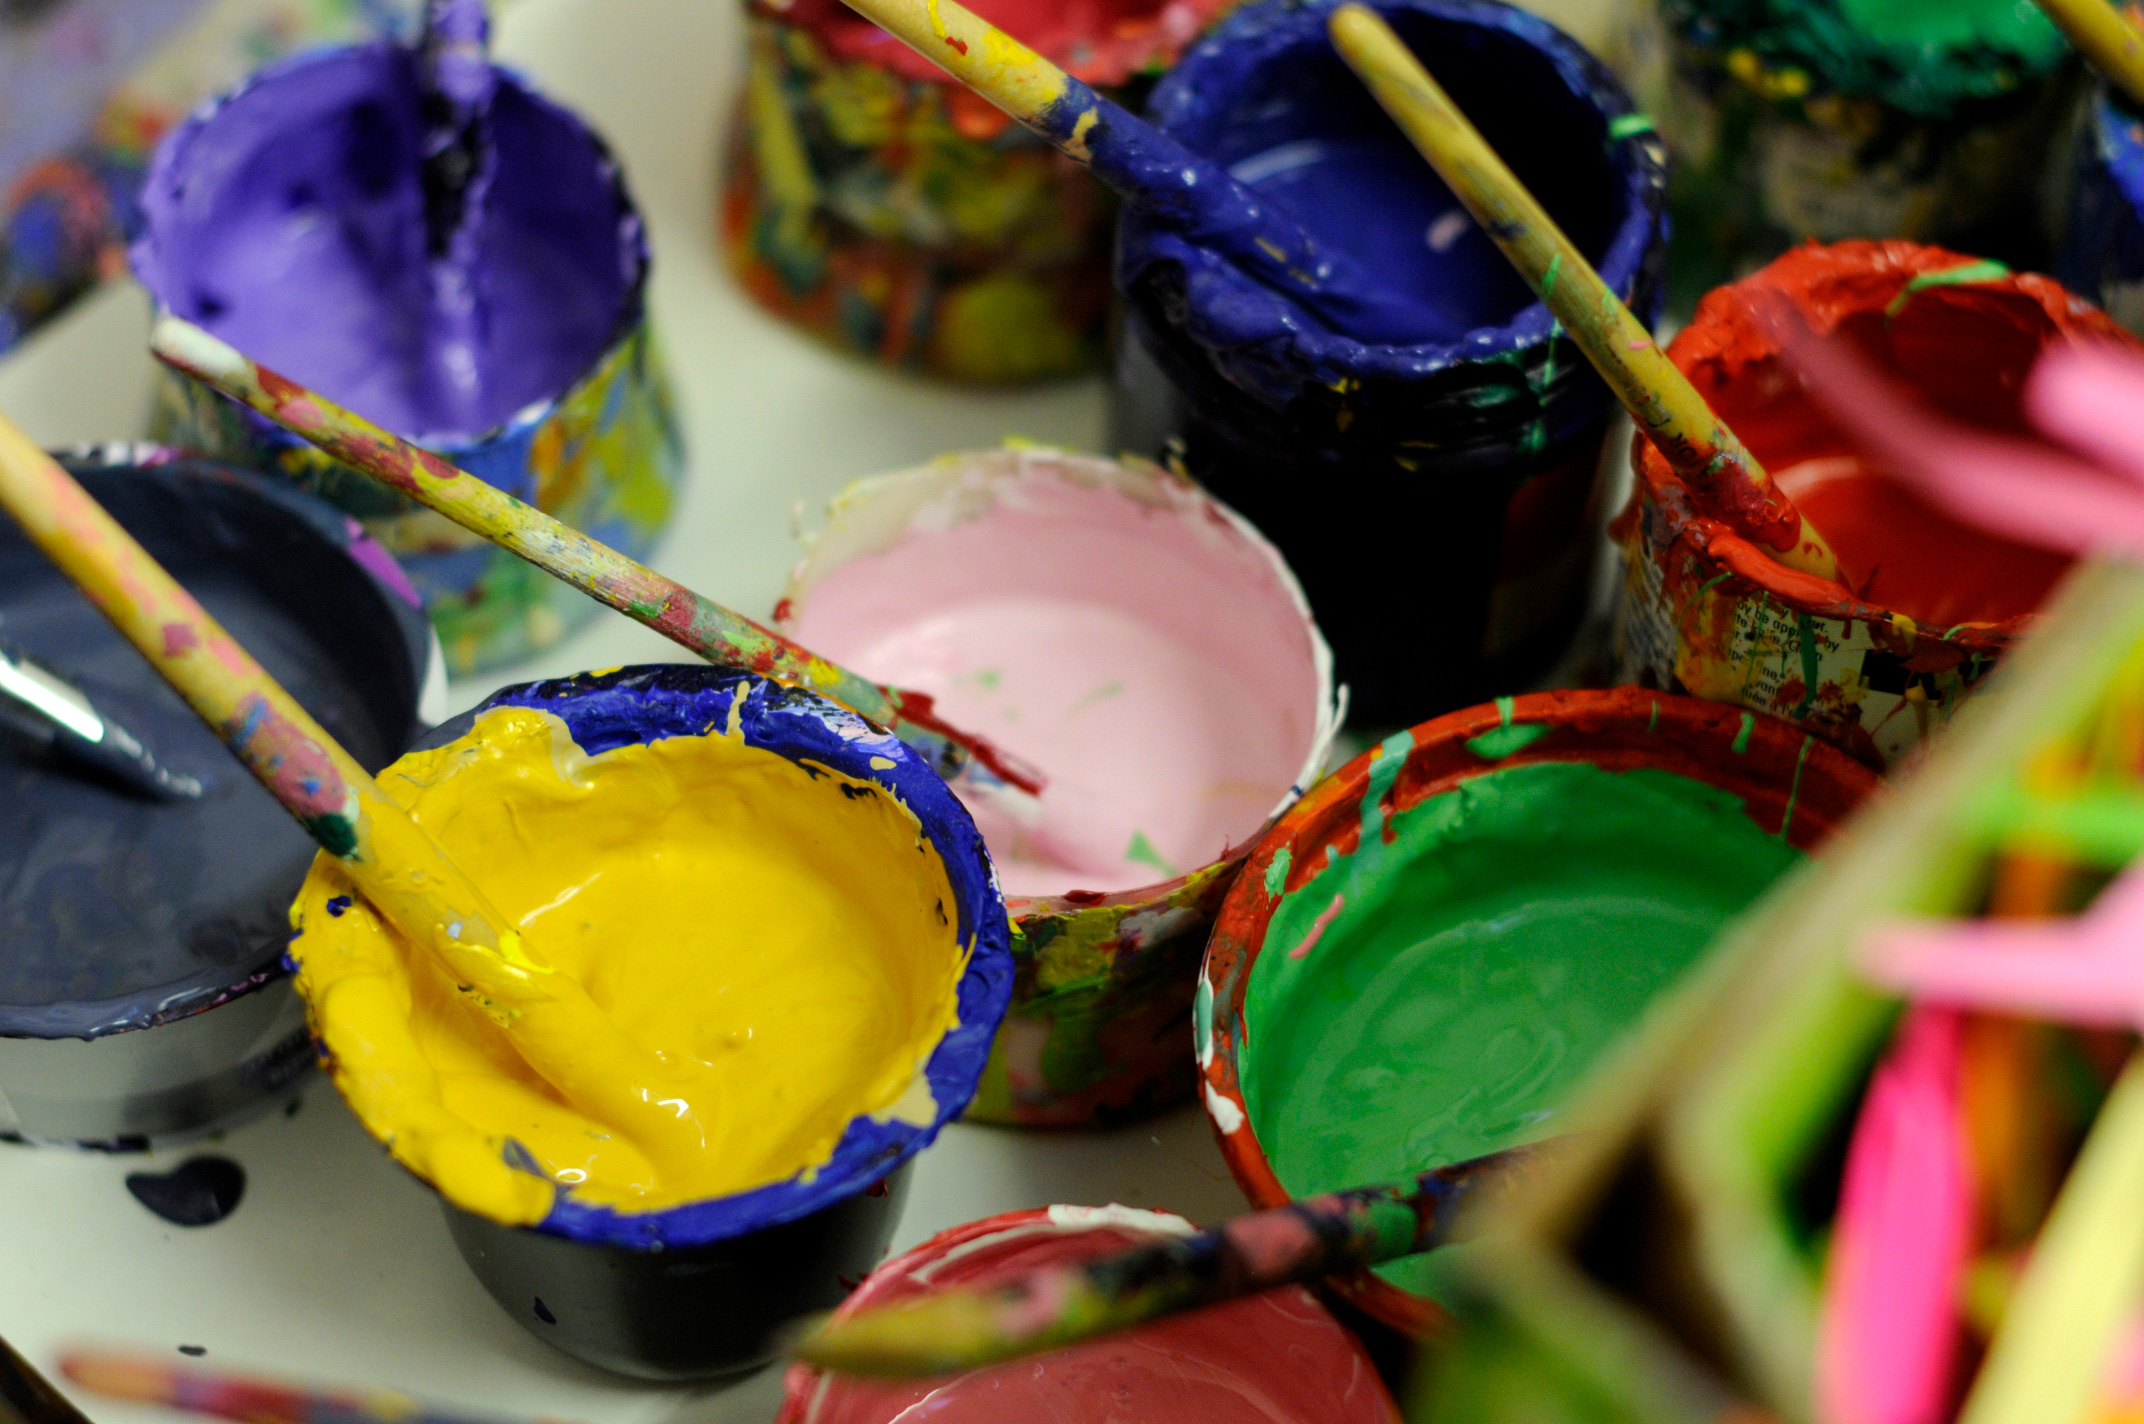 Image of colourful paint pots and brushes